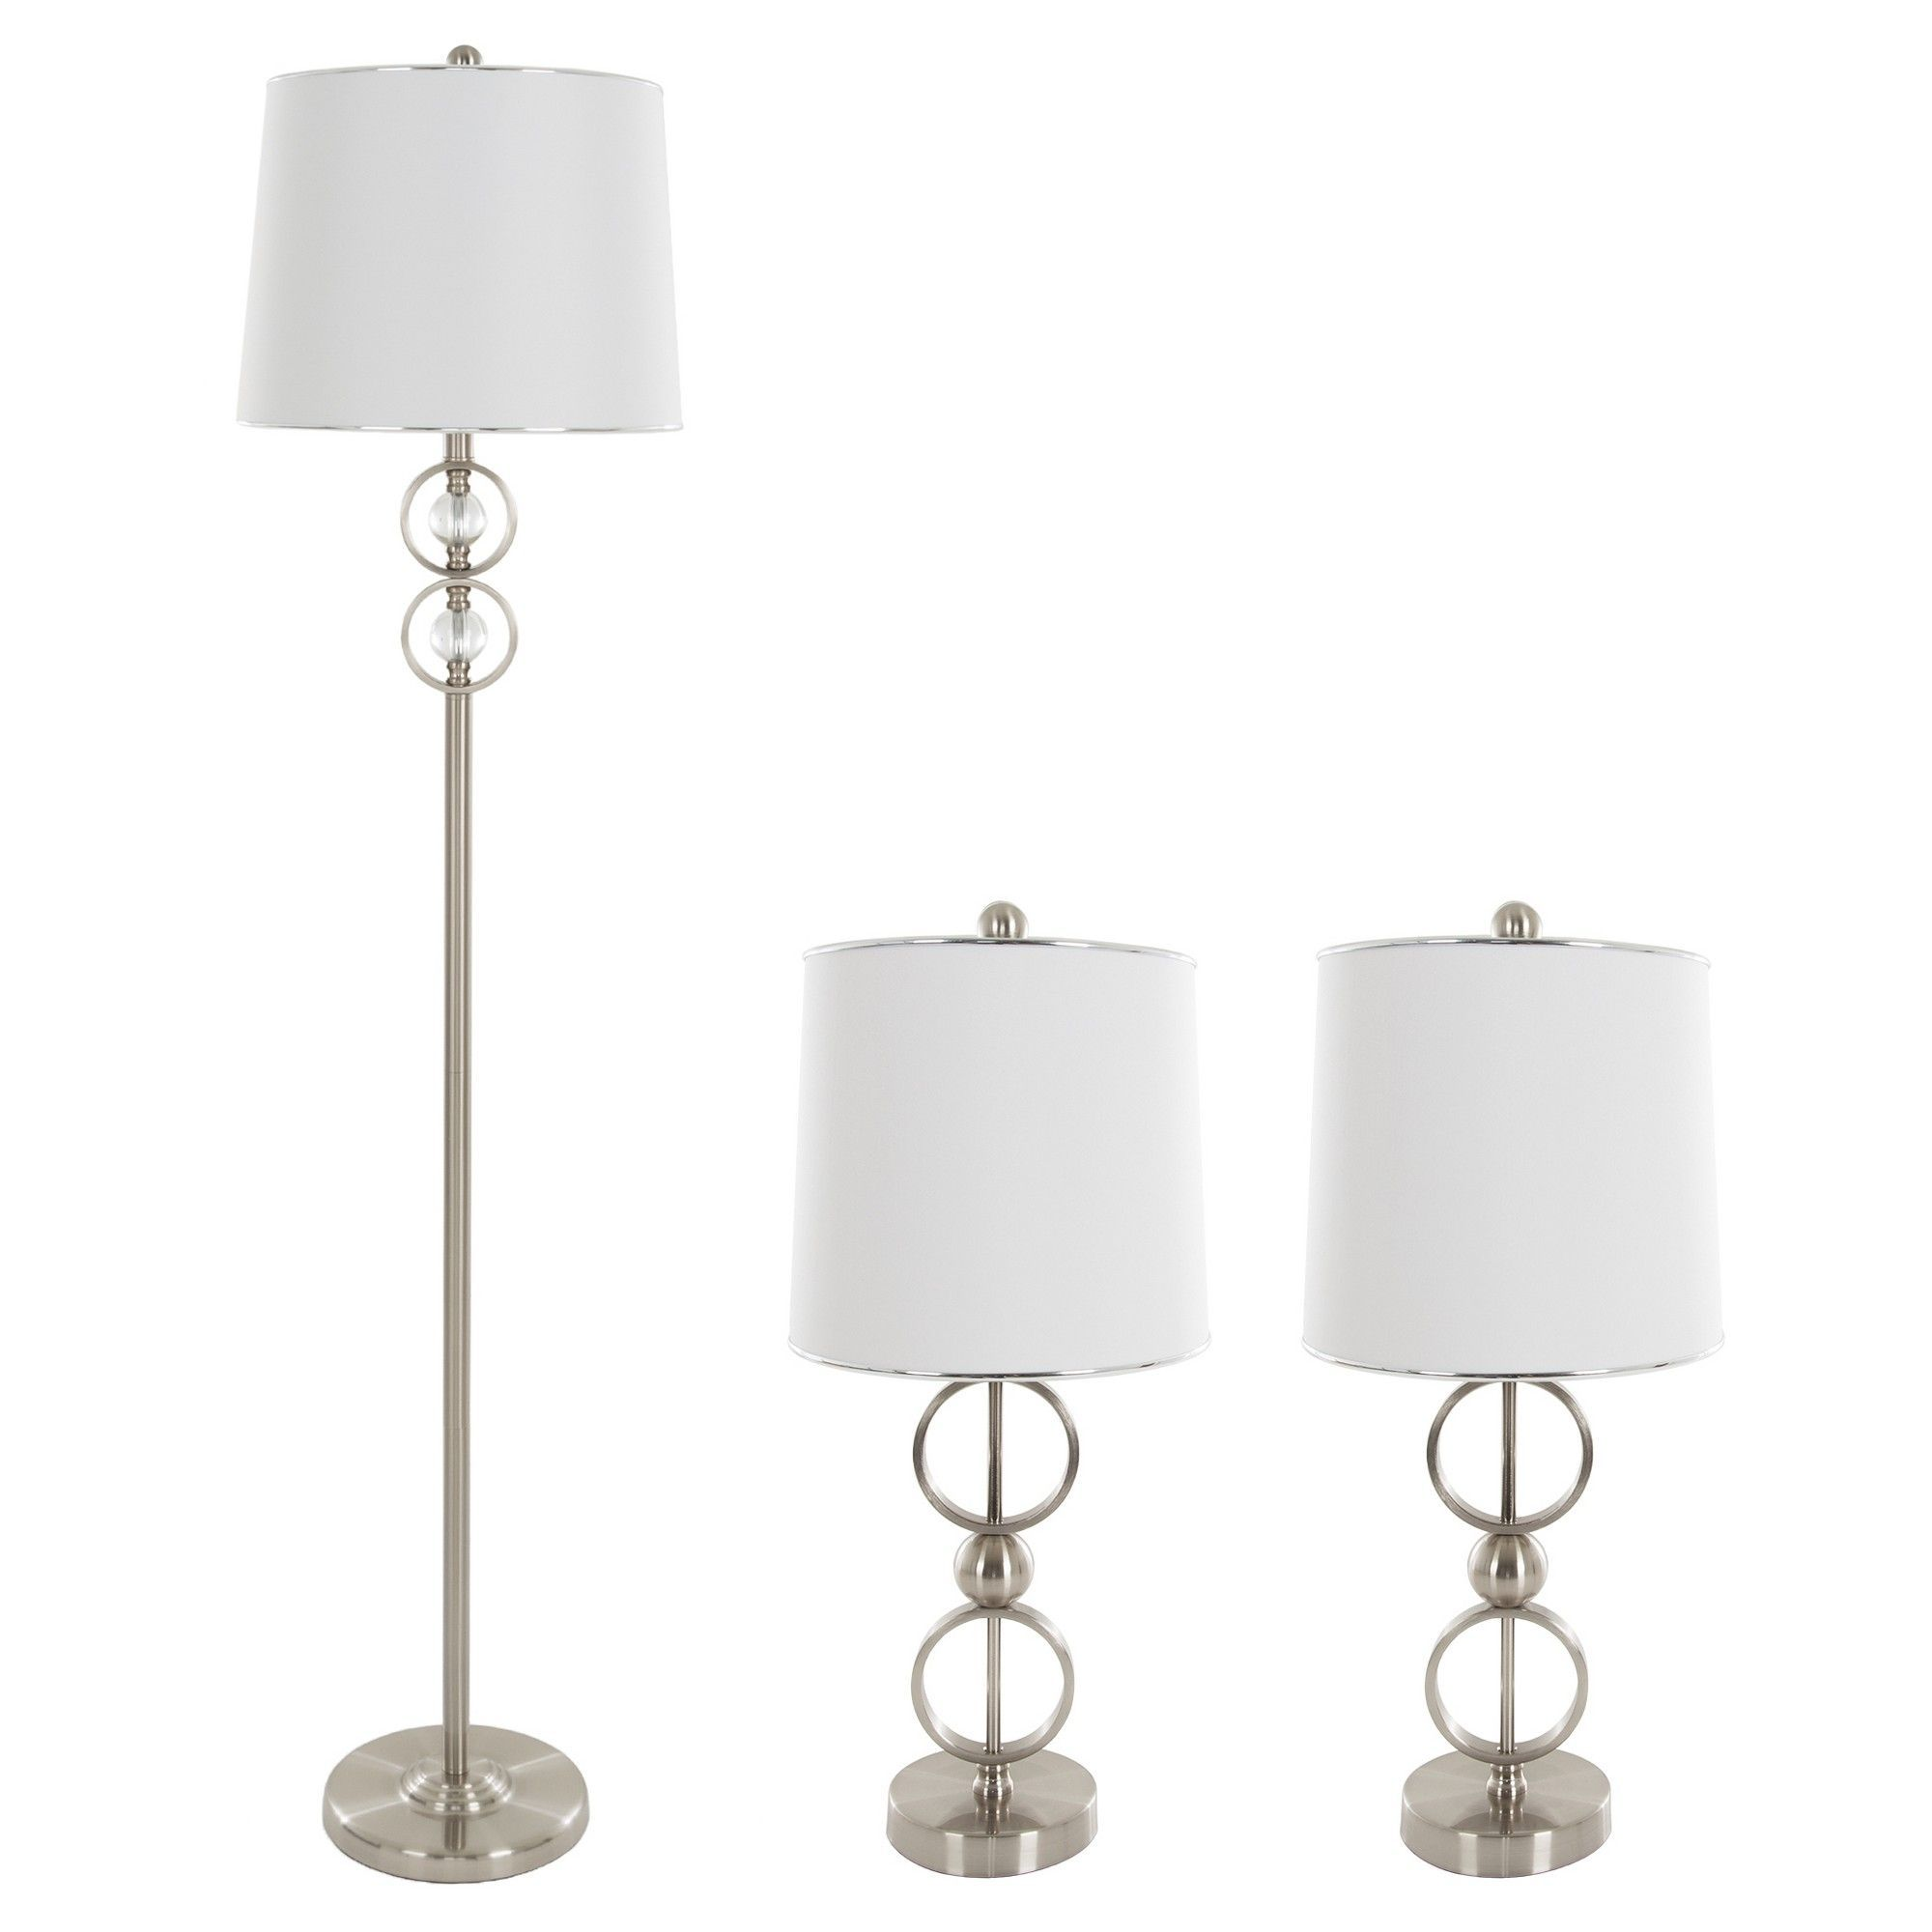 Table Lamps And Floor Lamp Modern Set Of 3 3 Led Bulbs Included Brushed Steel Yorkshire Home Lamp Sets Floor Lamp Modern Table Lamp